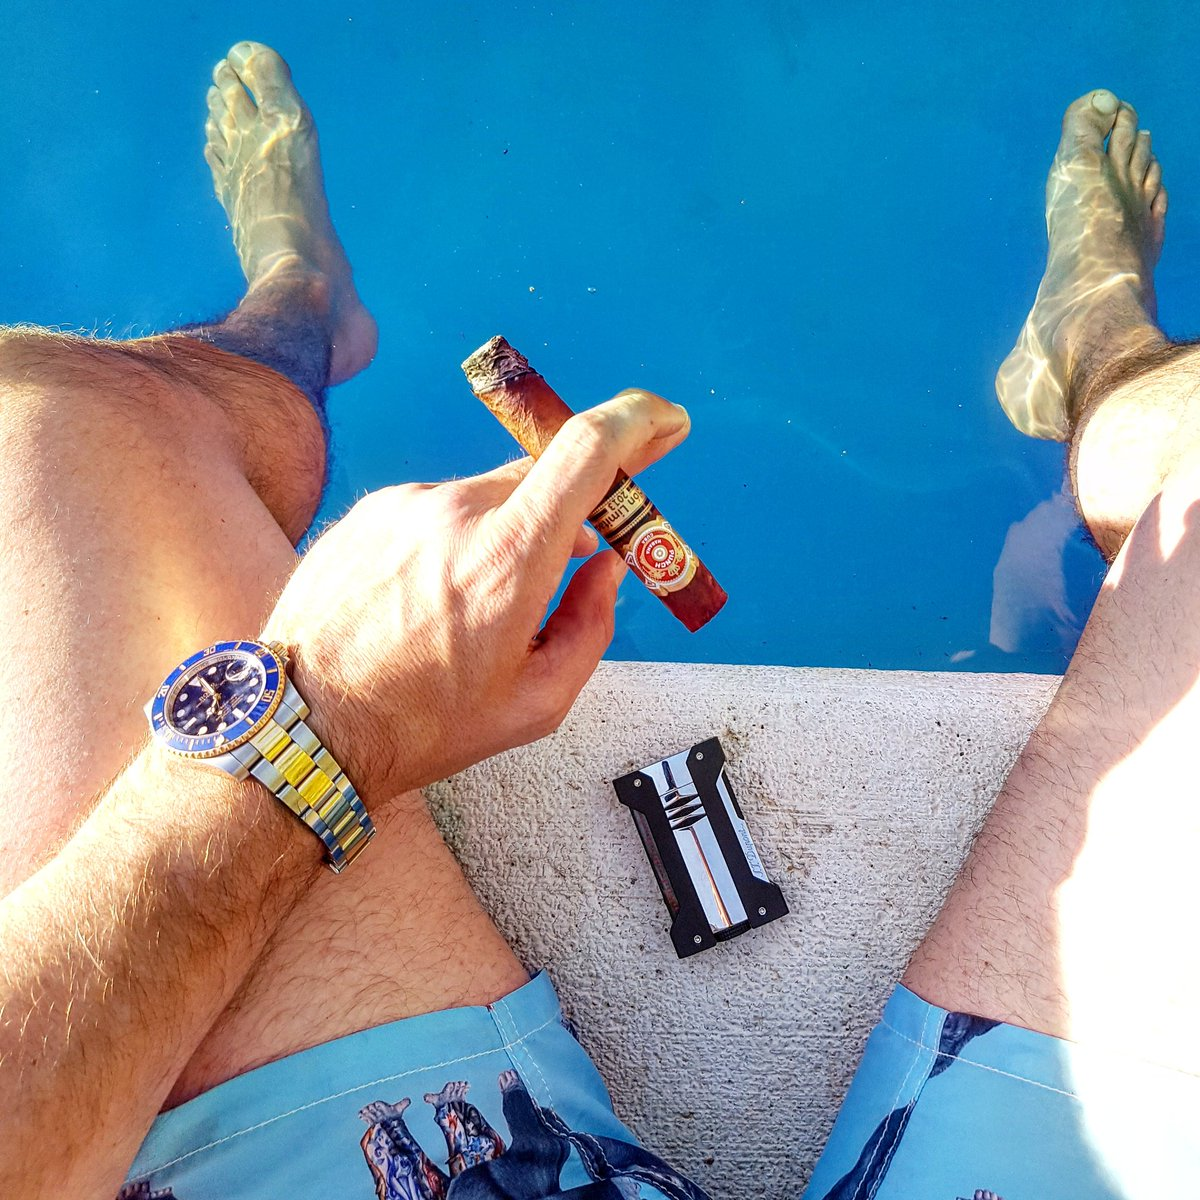 Have a lovely day people  #relax #cigars #pooltime #dupont #sunshine<br>http://pic.twitter.com/C0cnsJqC8n